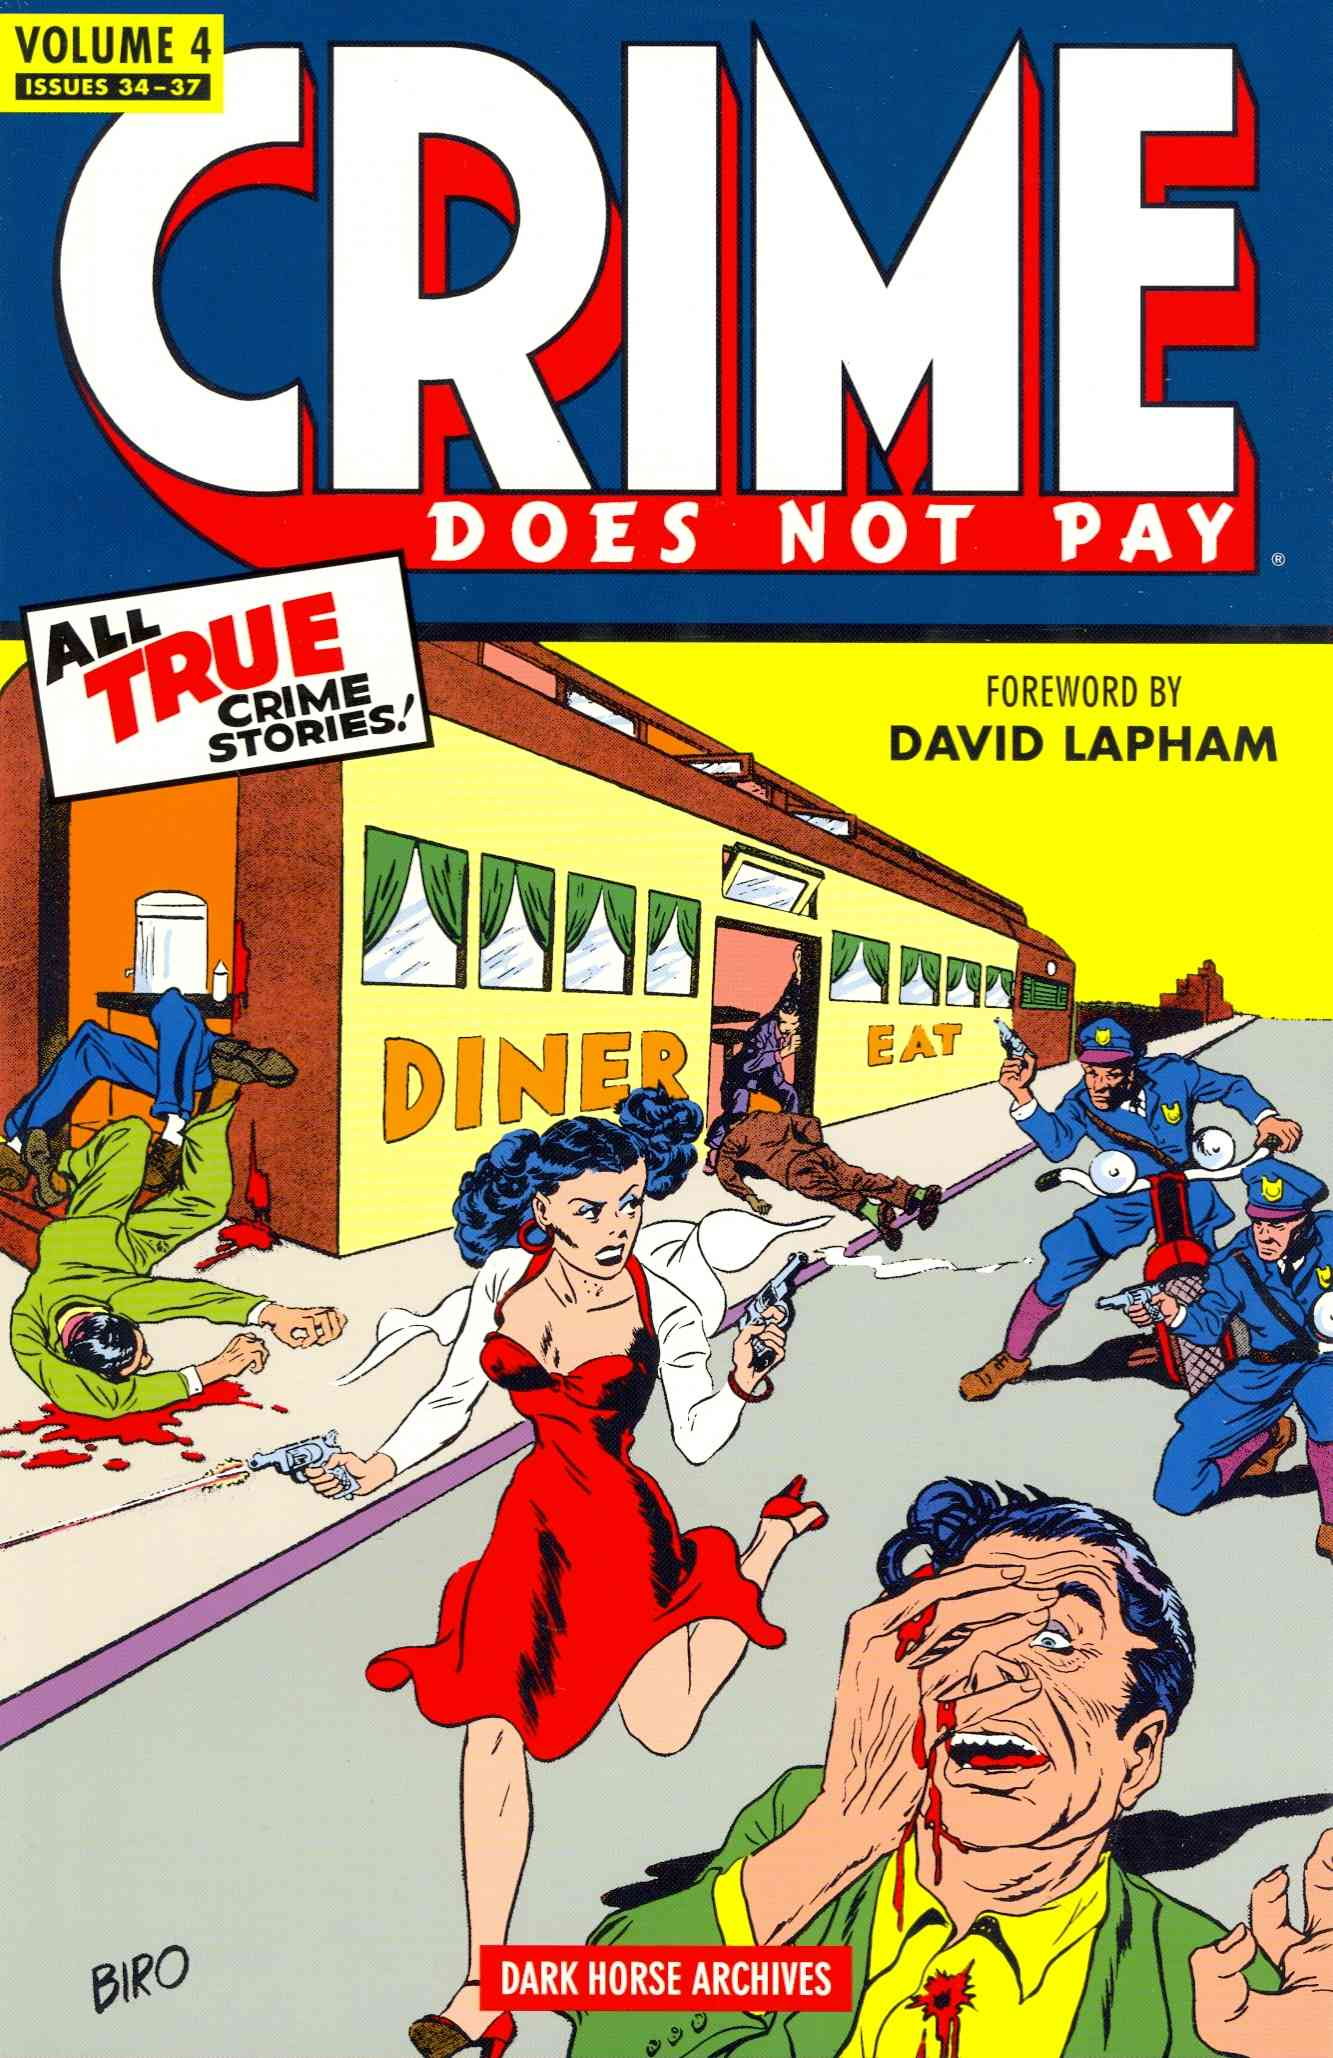 Crime Does Not Pay Archives 4 (Hardcover) - Thumbnail 0